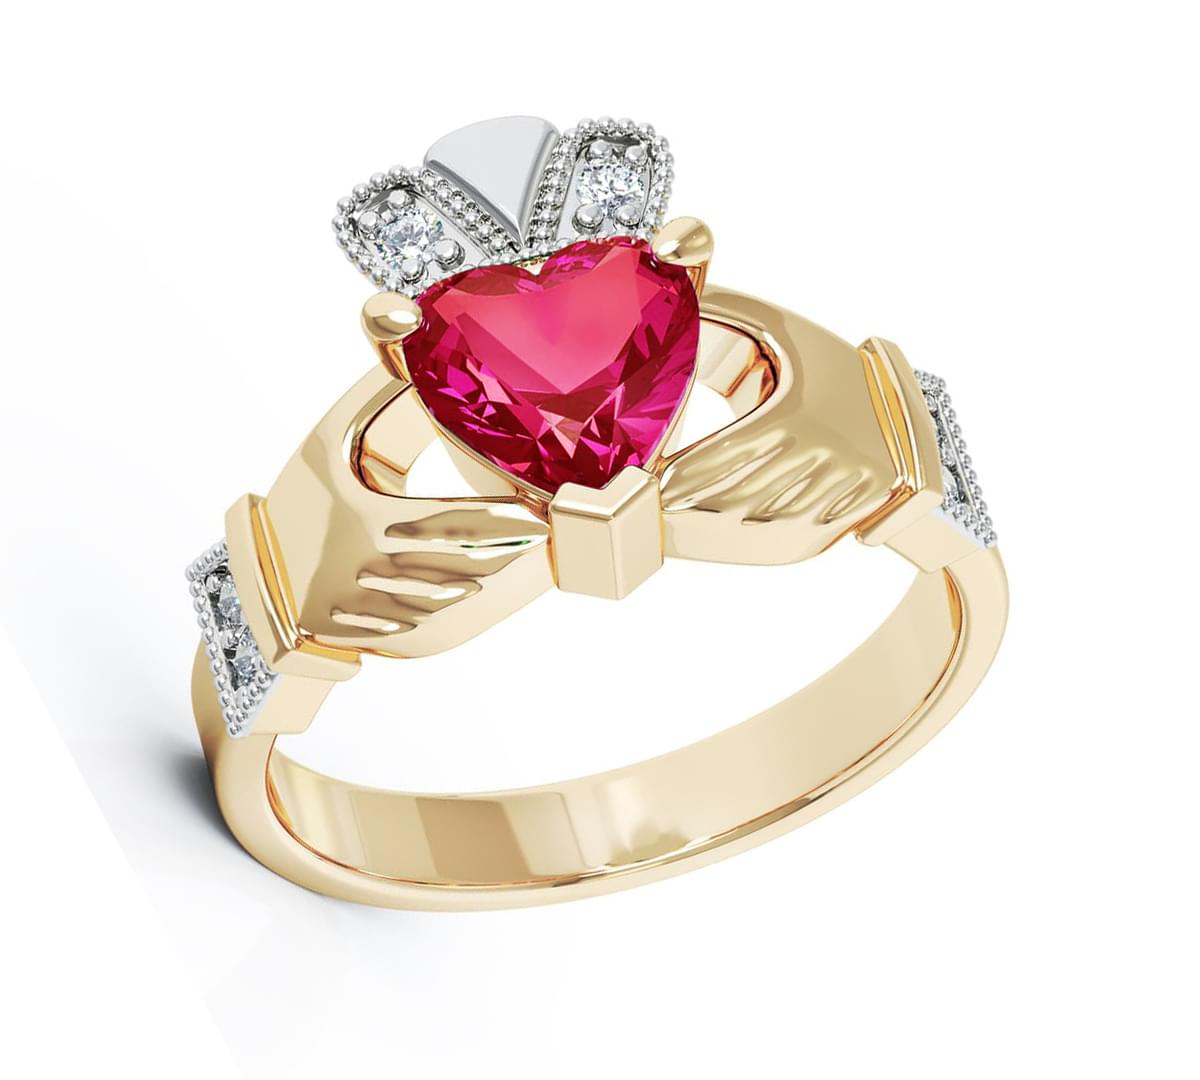 Gold Claddagh Engagement Ring With Heartshape Ruby